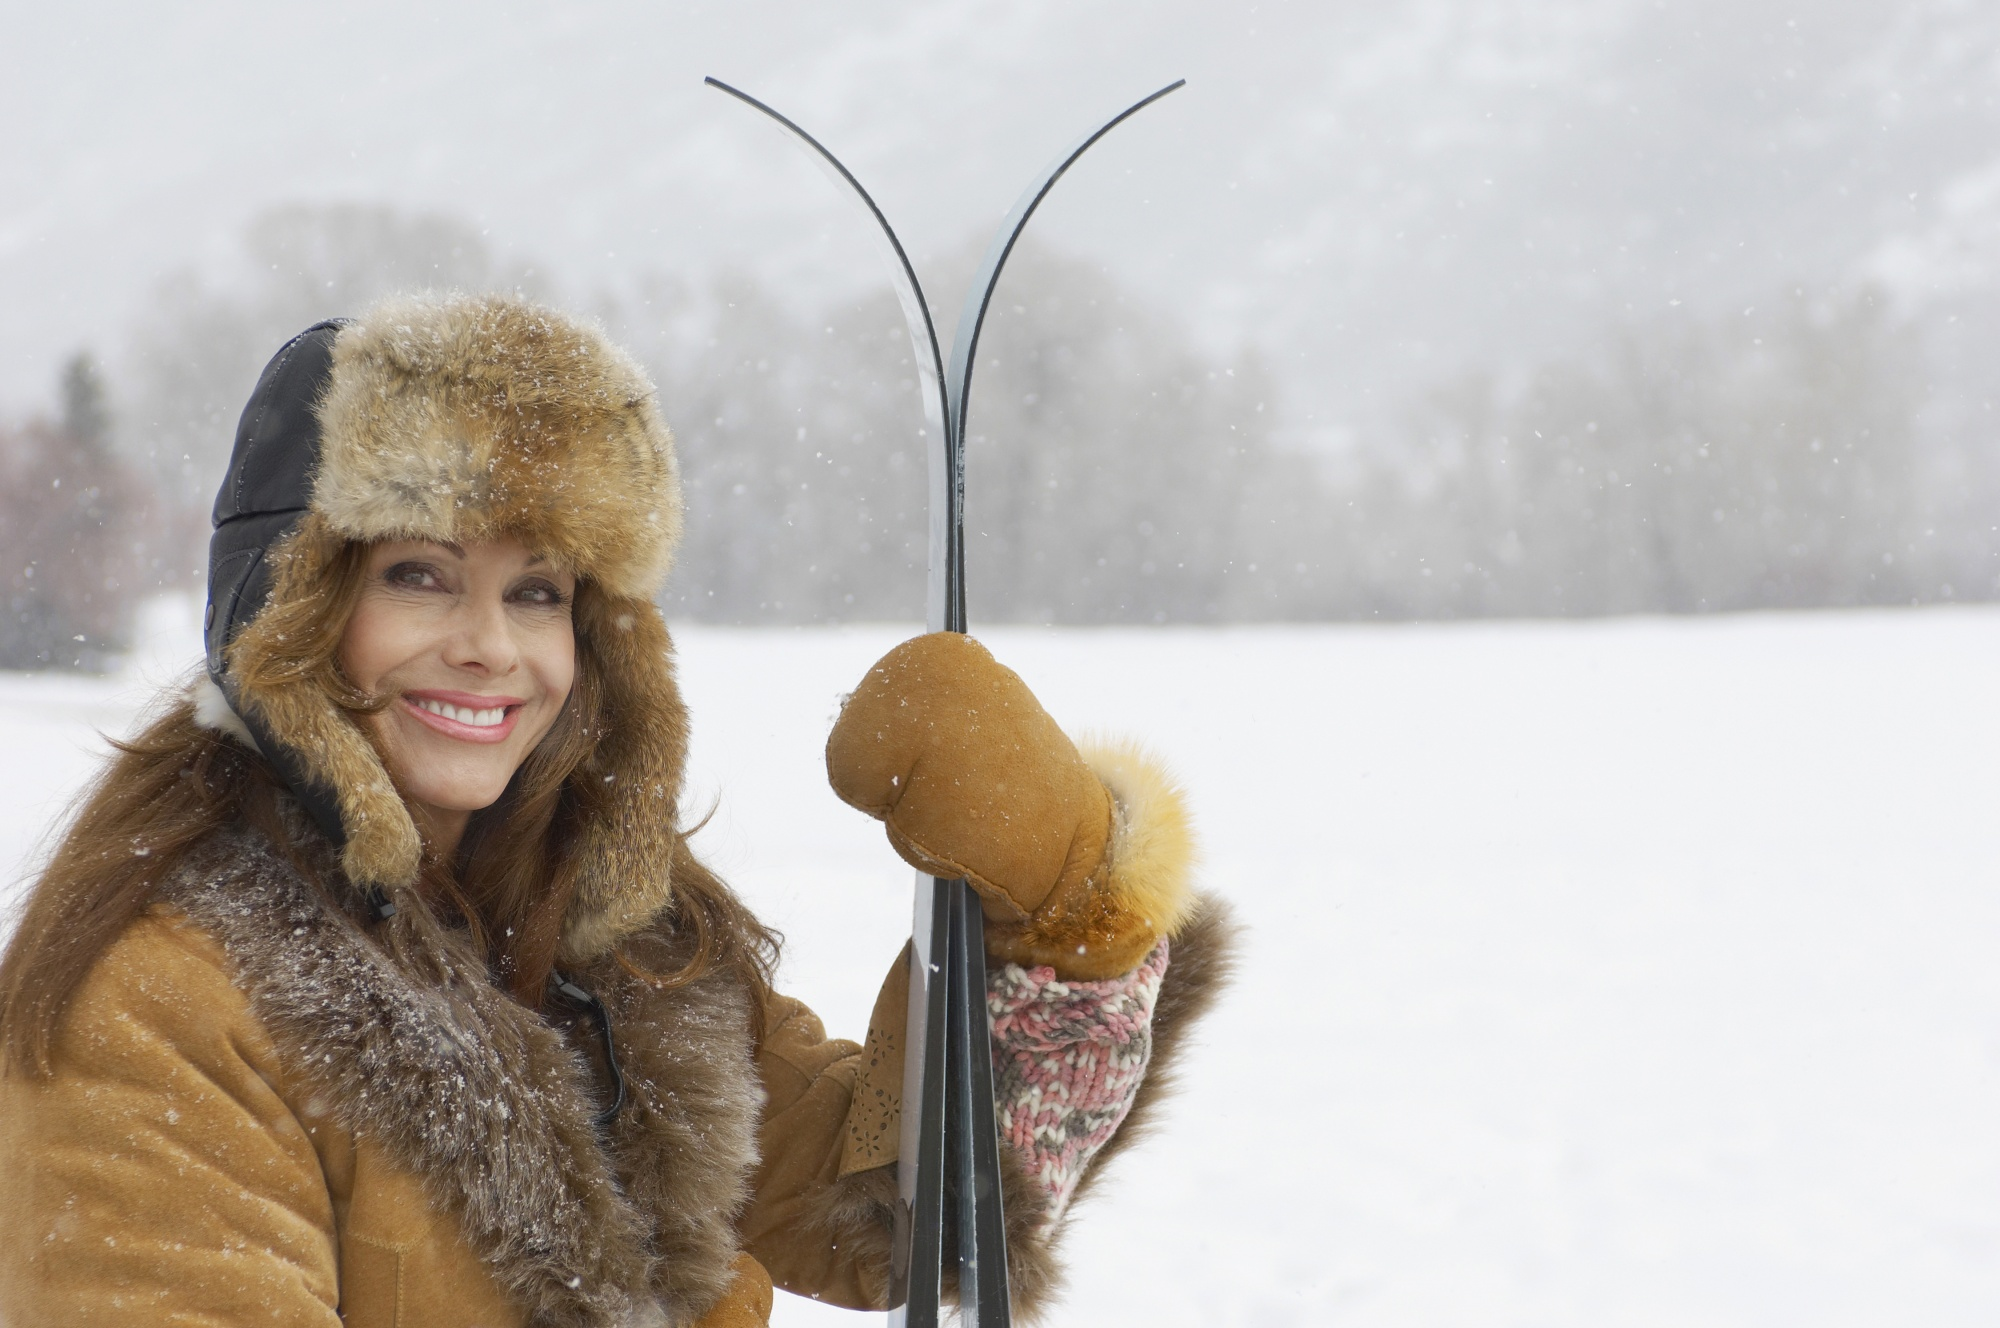 dating profile after 40, attractive woman smiling outdoors in snow with skis